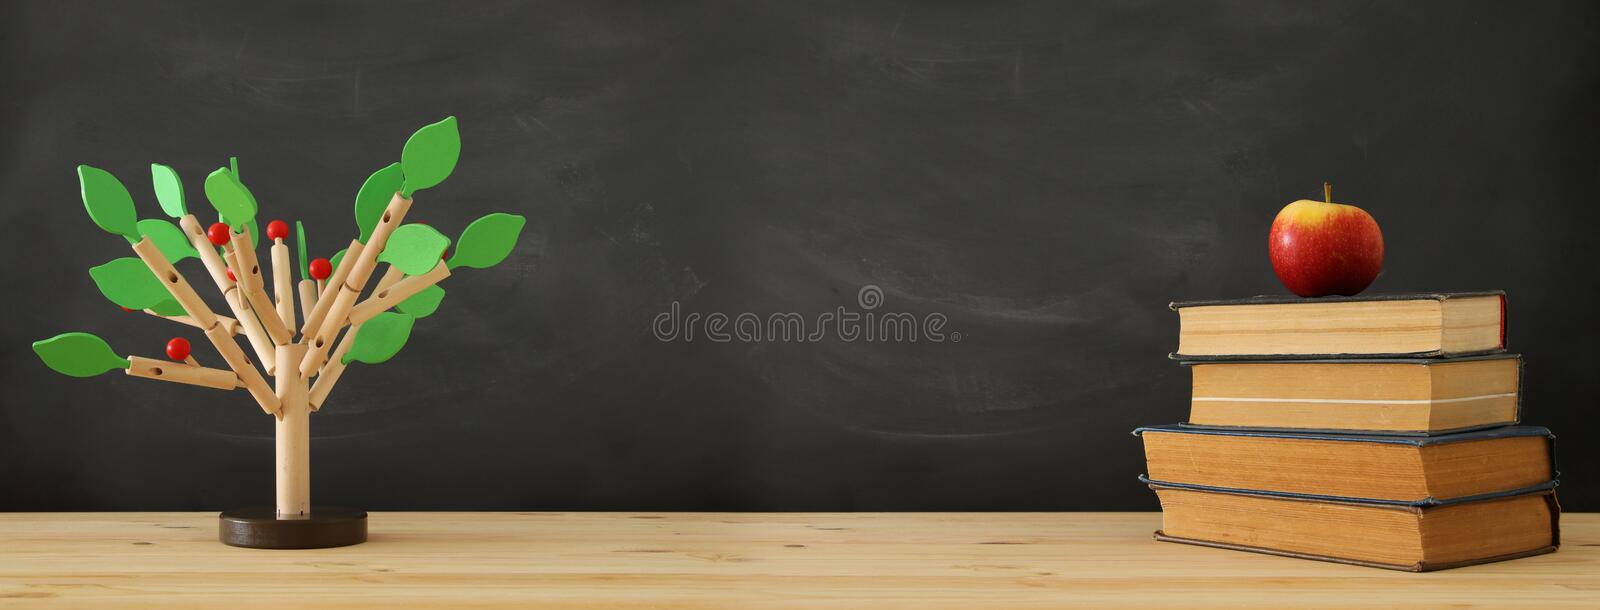 banner of open book and wooden tree puzzle over blackboard background. education and knowledge concept. stock image